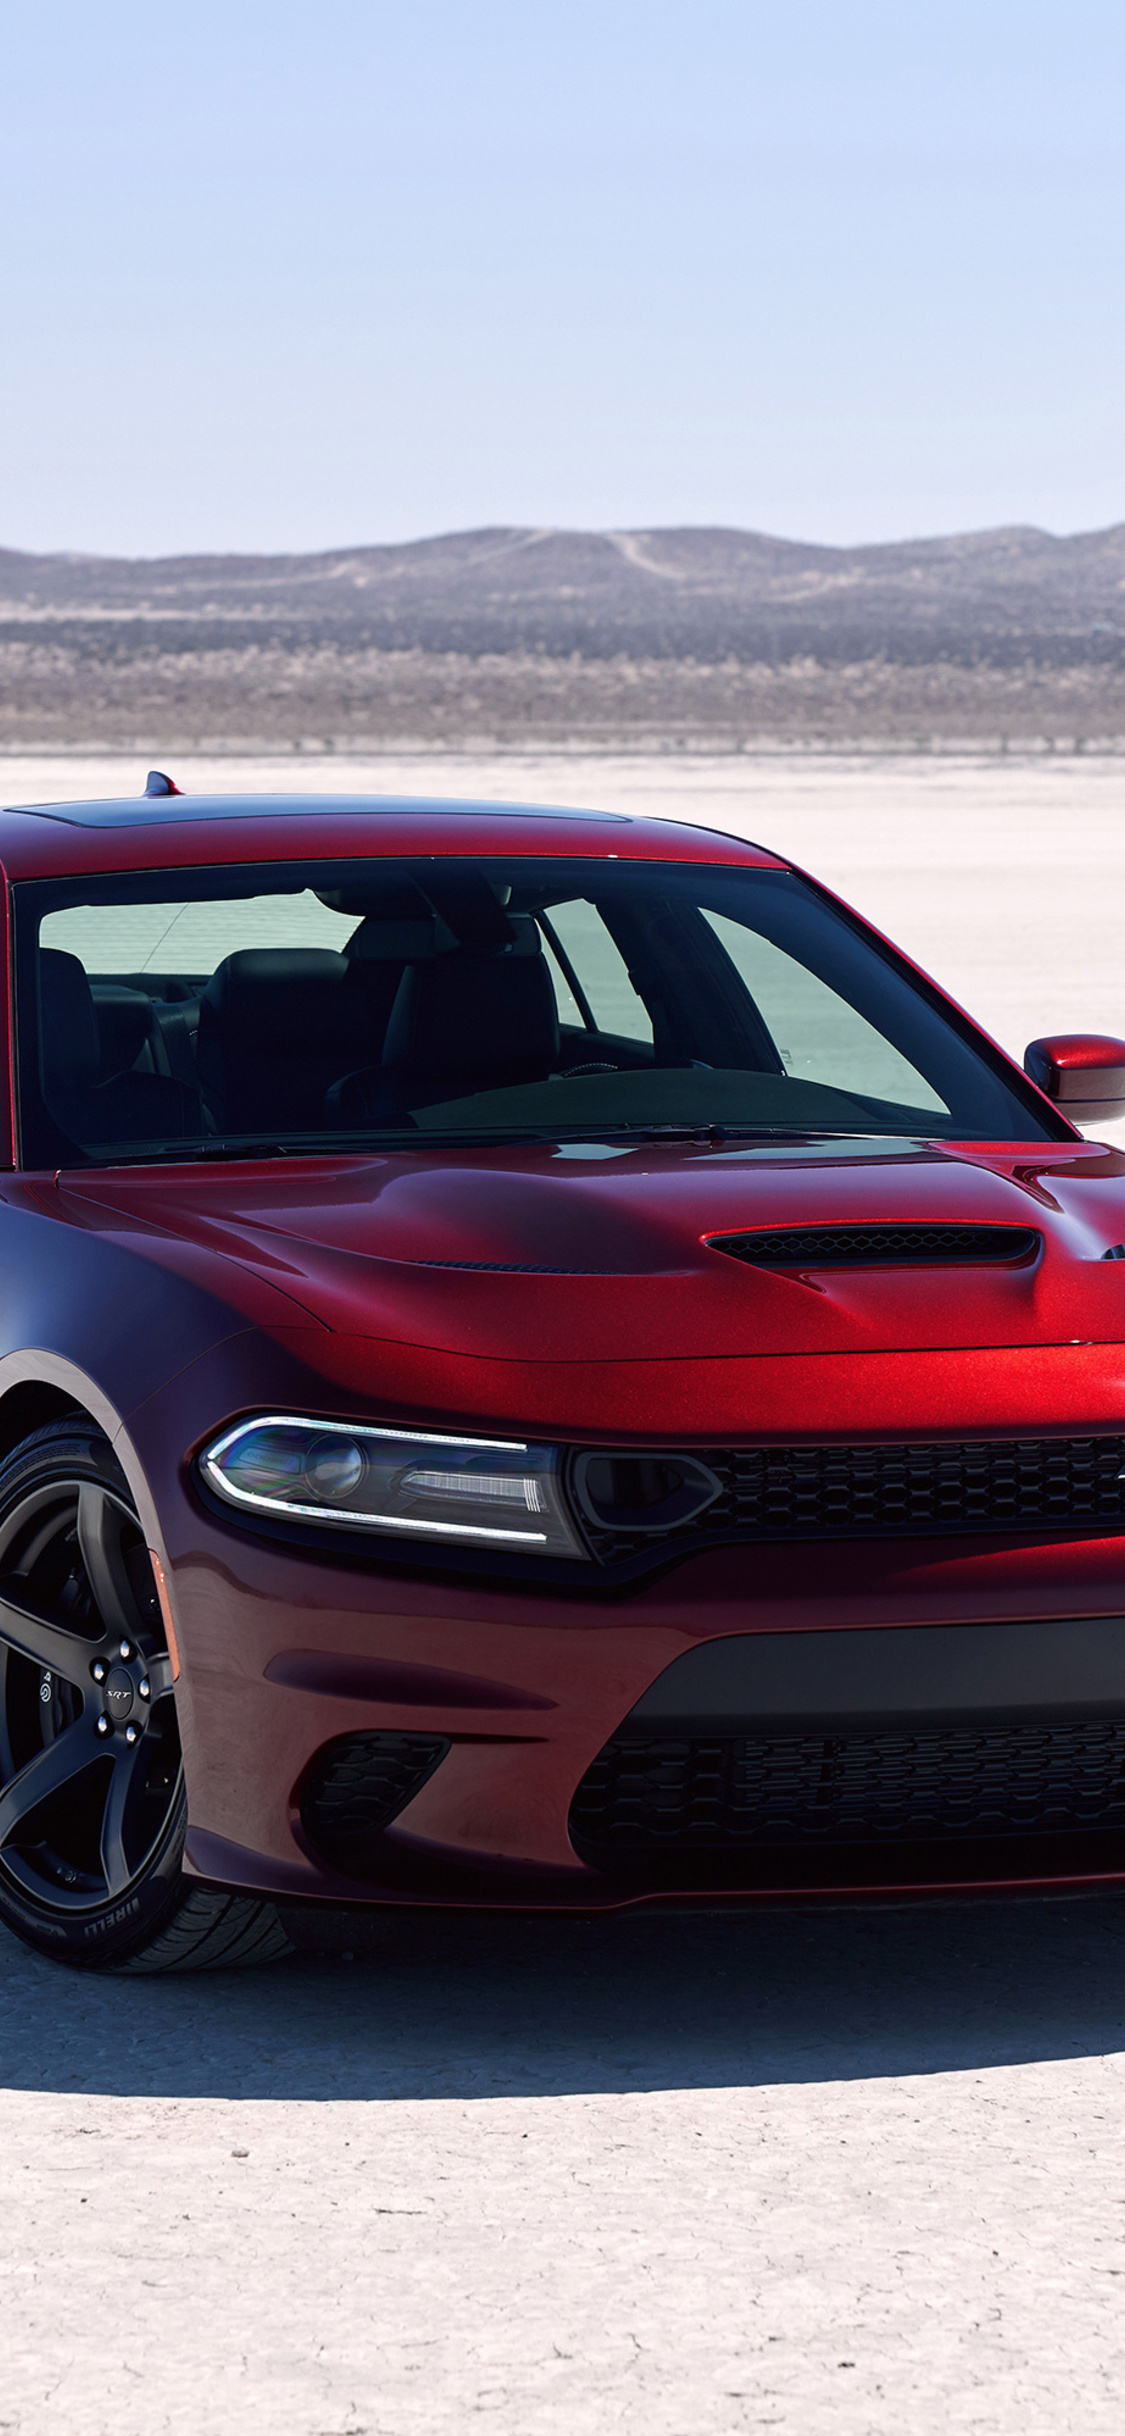 1125x2436 Dodge Charger Srt Hellcat 2019 Iphone Xs Iphone 10 Iphone